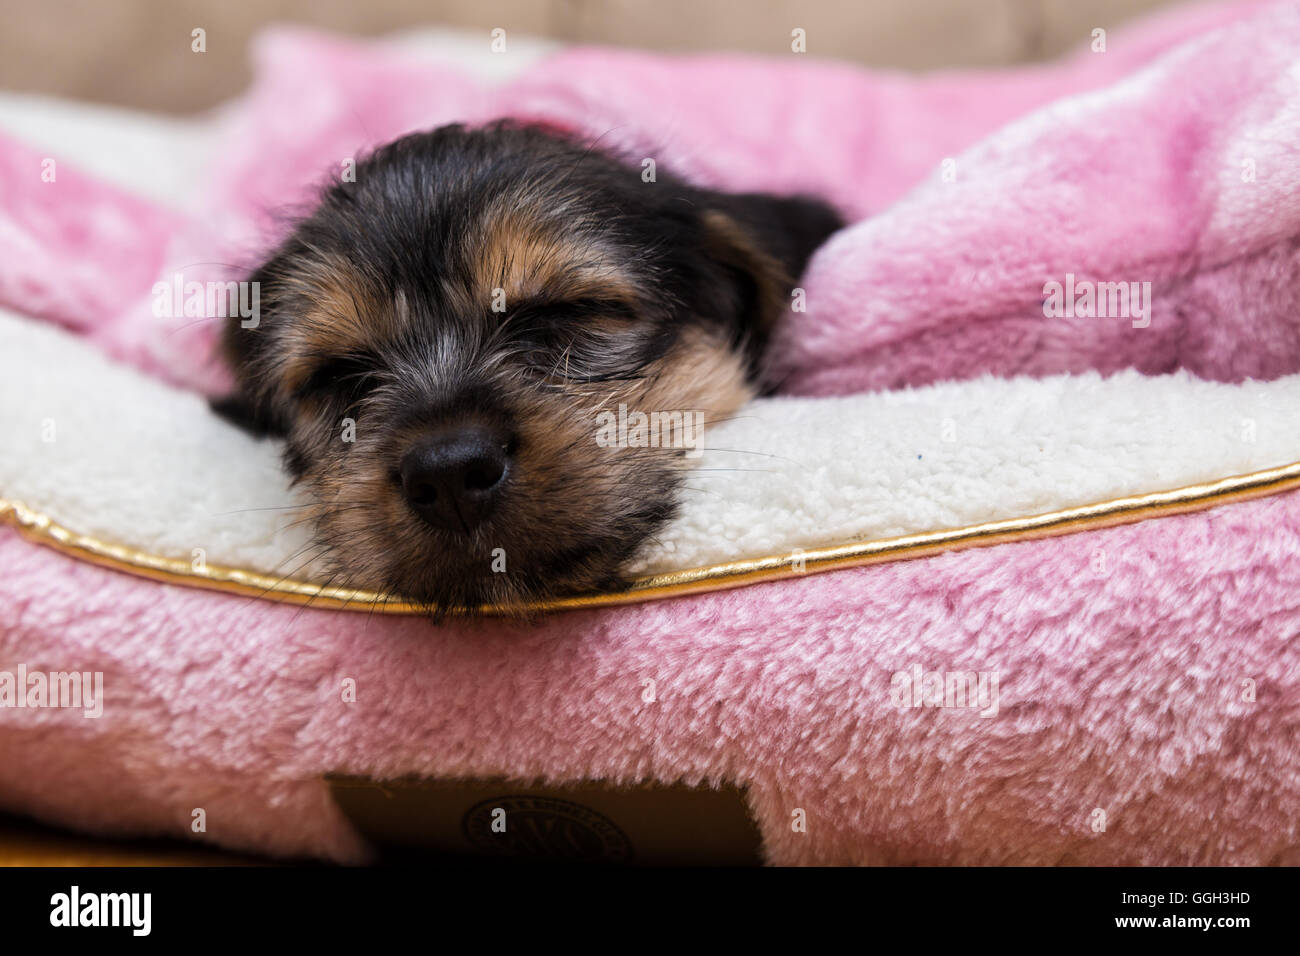 Sweet Dreams - Stock Image